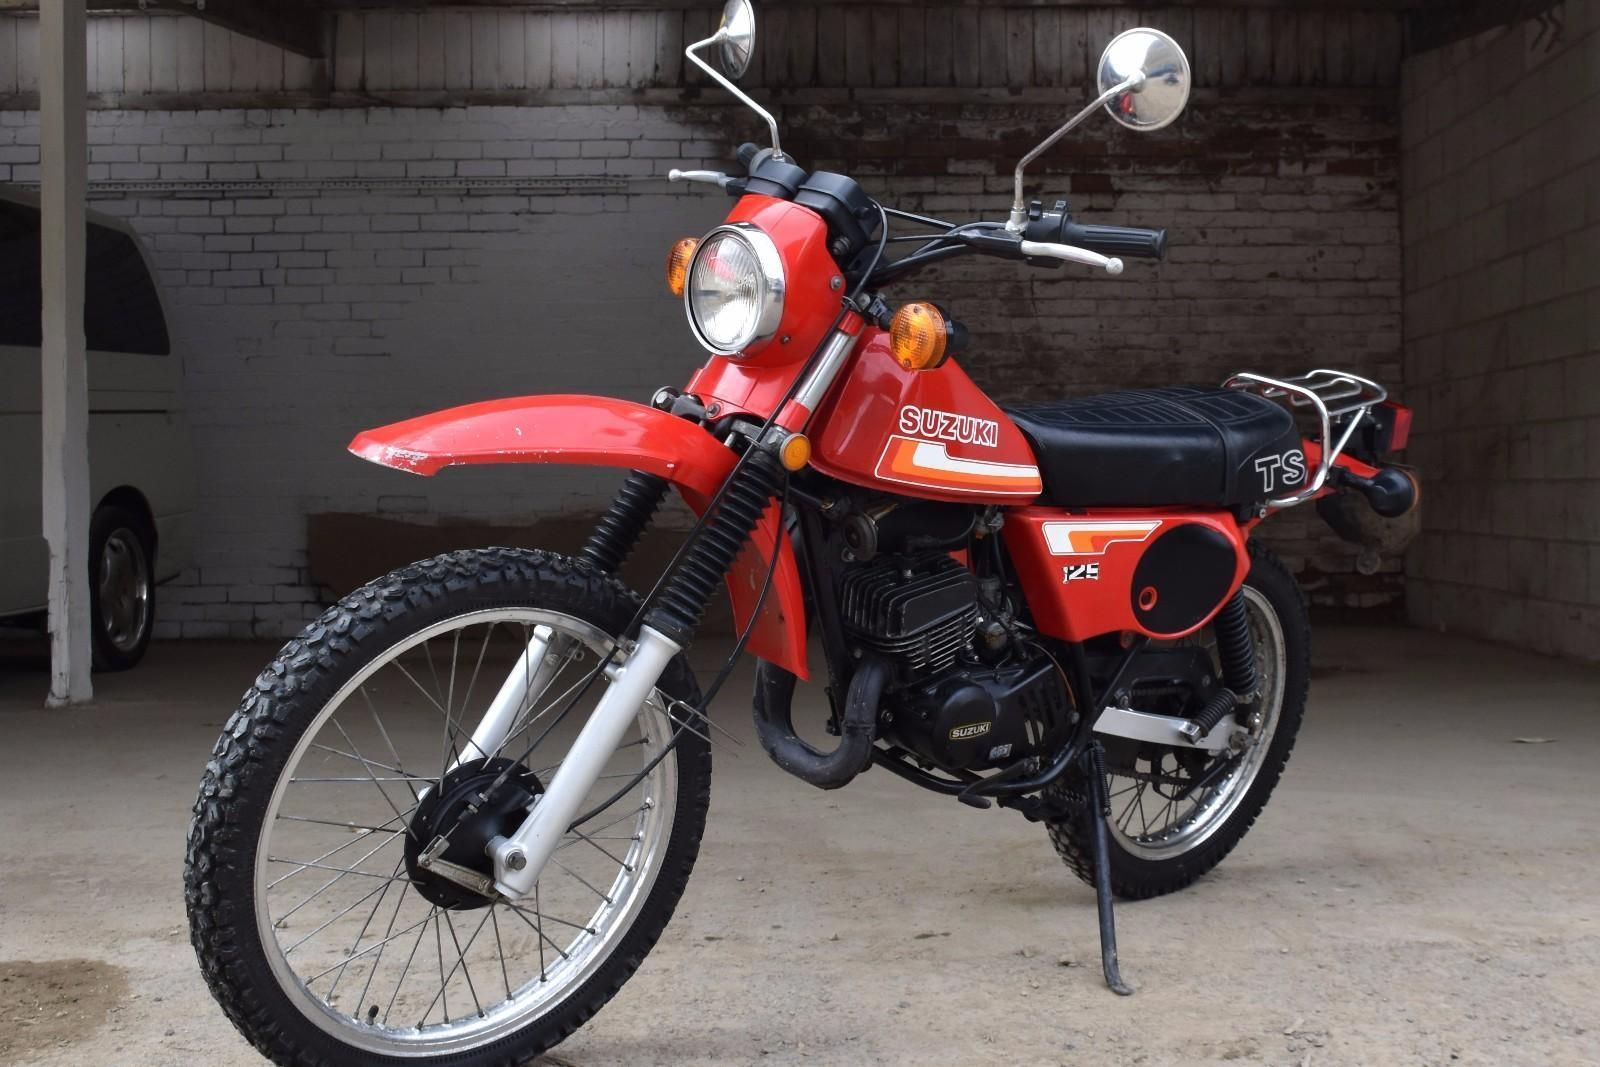 This is a 1980 TS1252 twinshock, twostroke dualpurpose